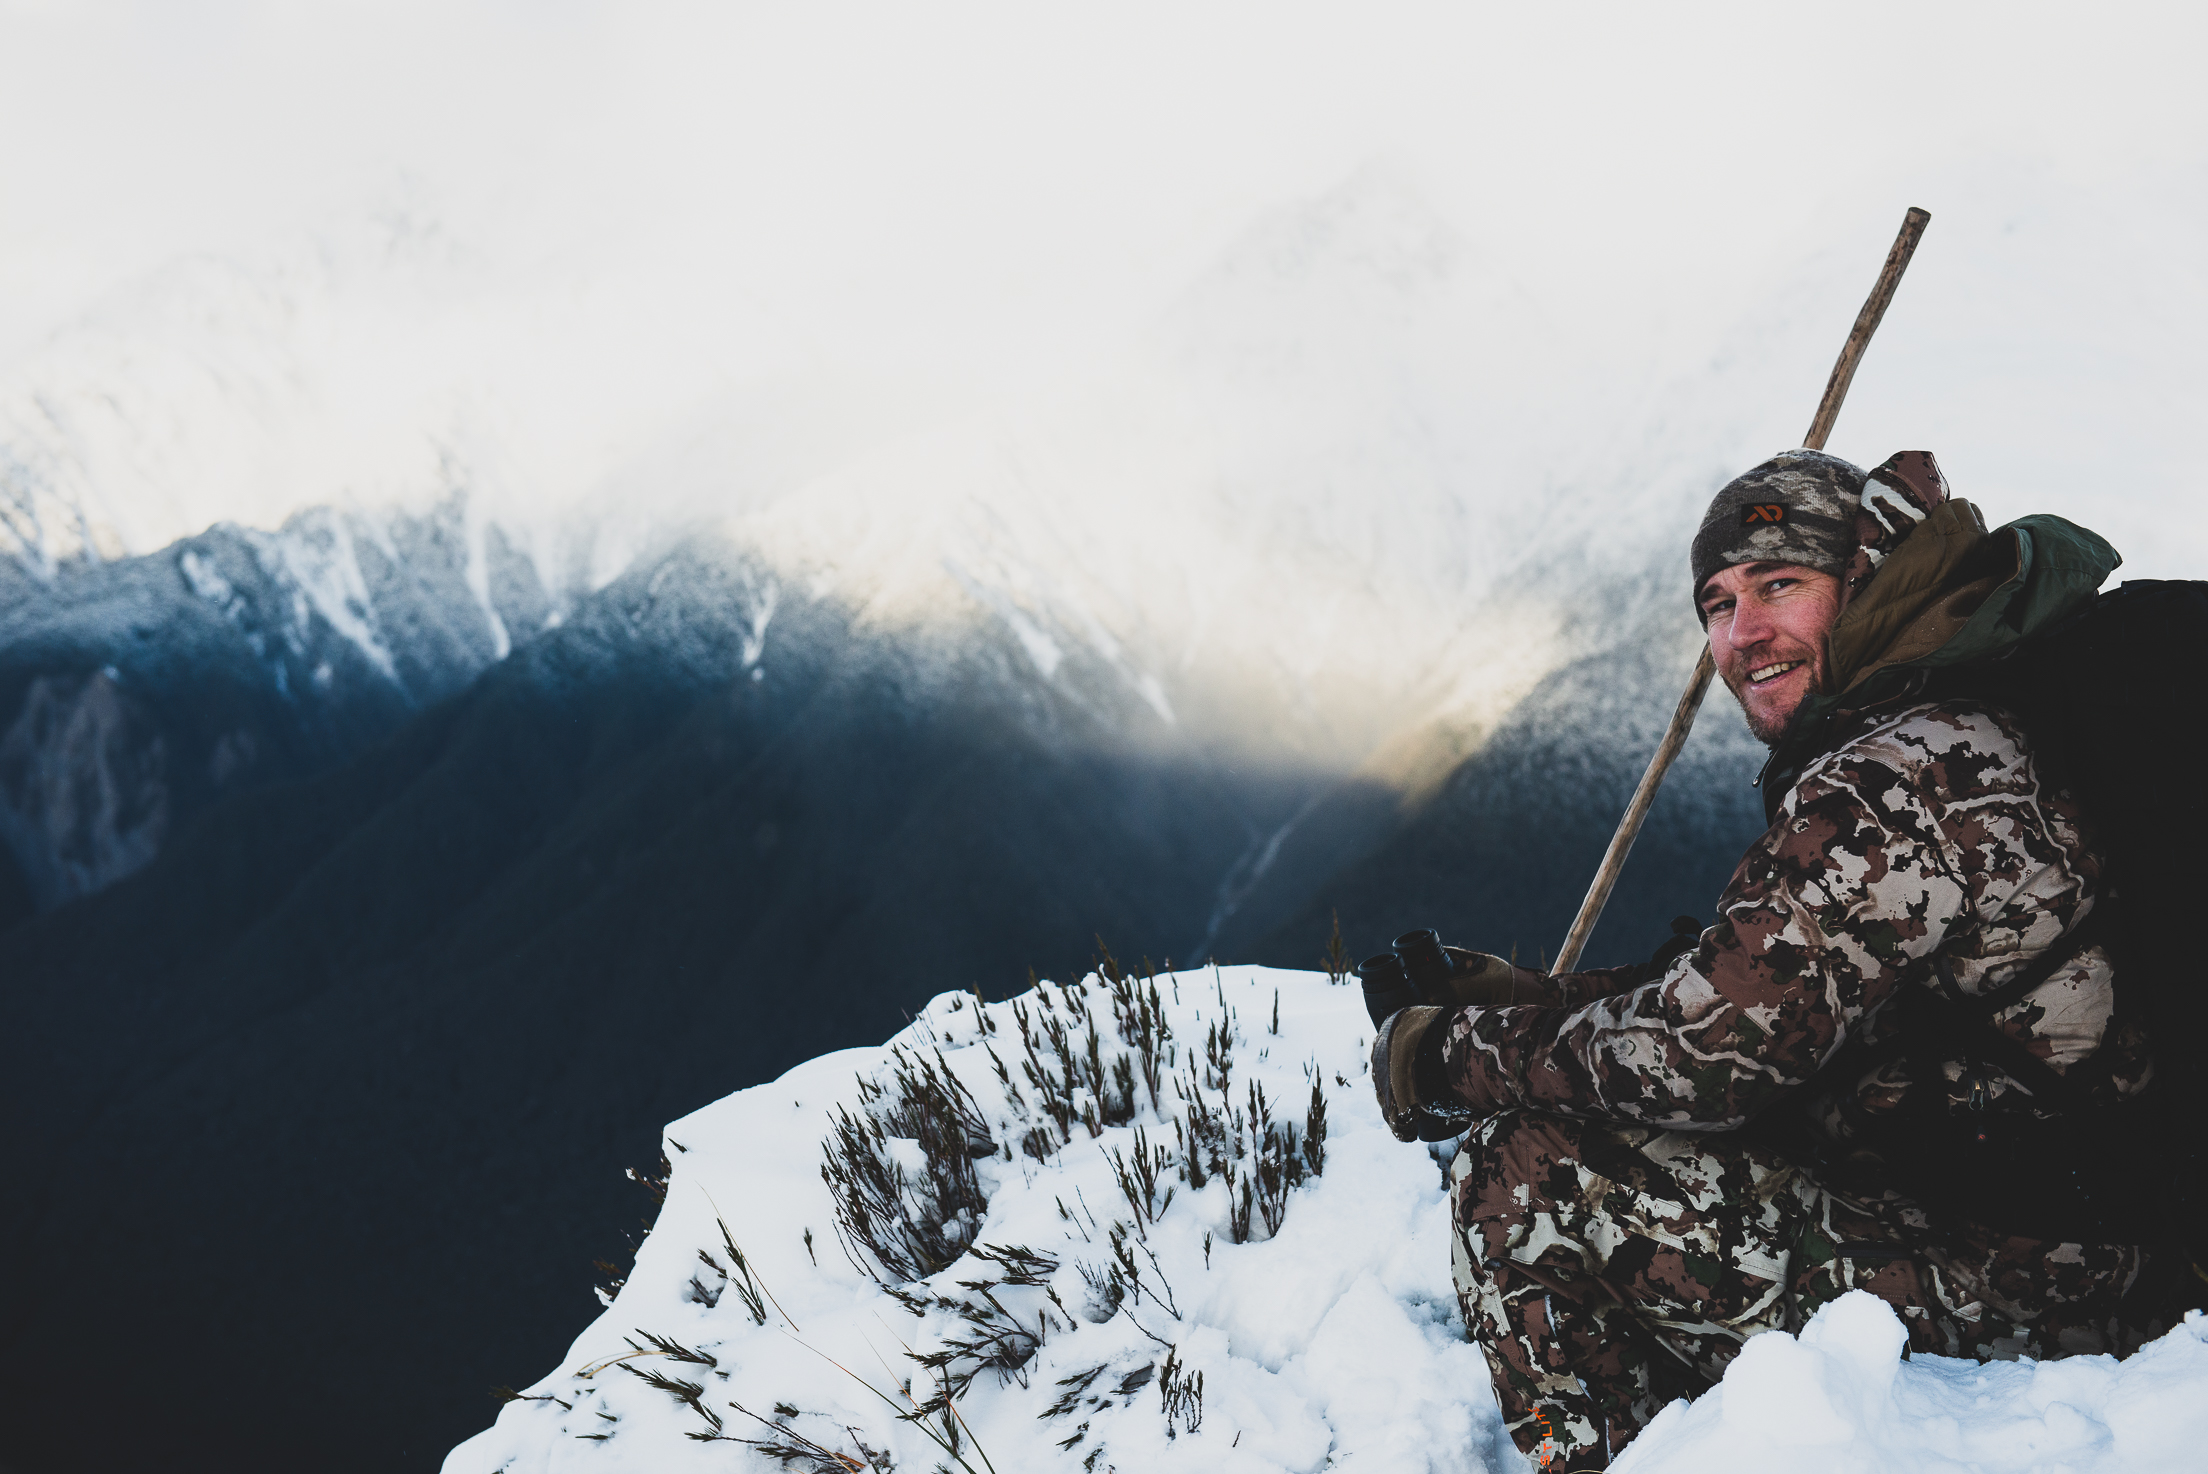 tahr hunting image @Sean Powell